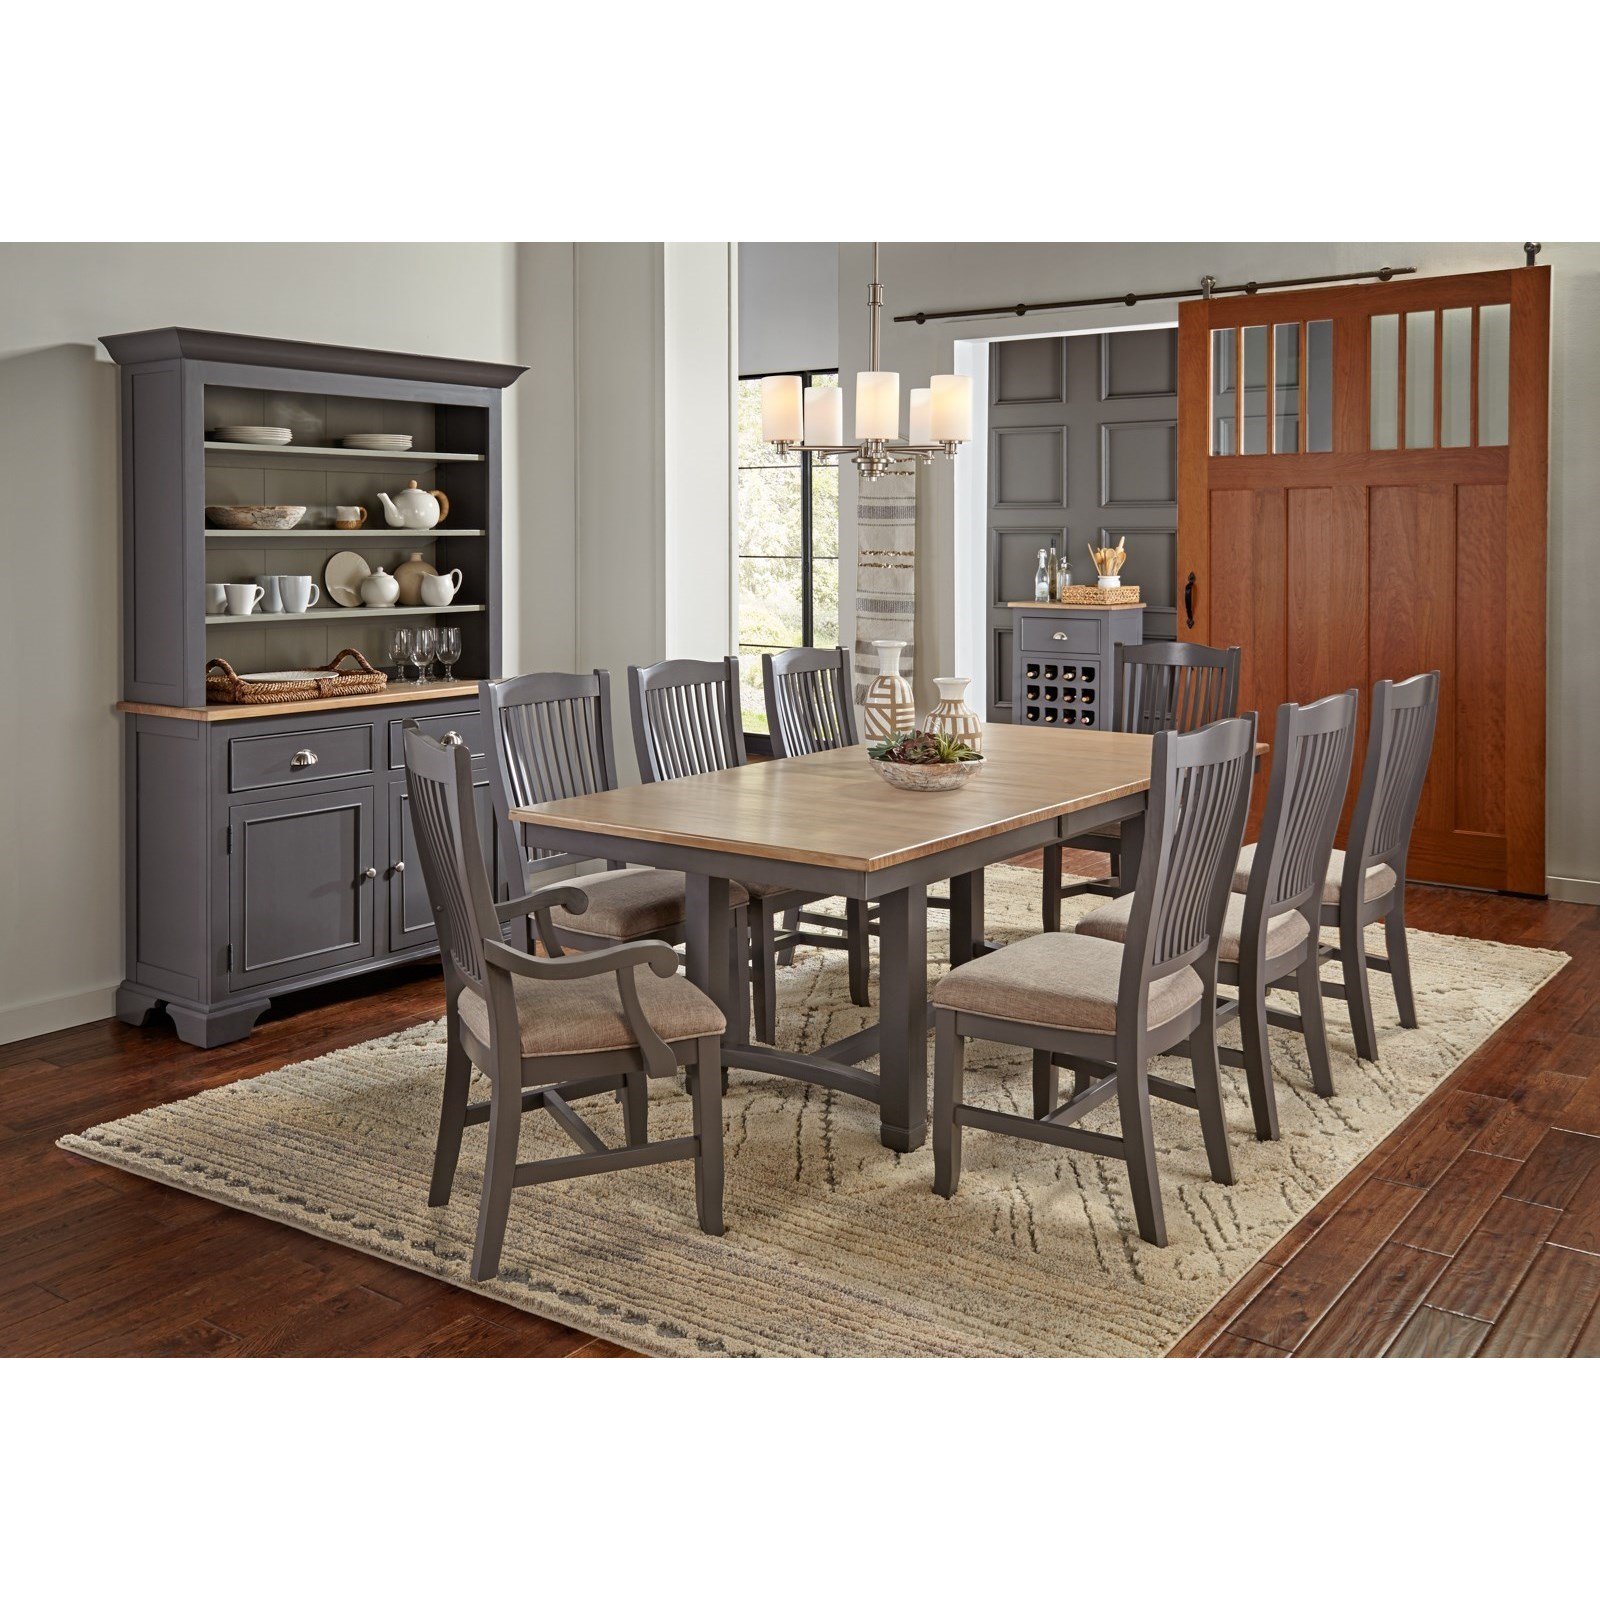 Port Townsend Dining Room Group by AAmerica at Mueller Furniture